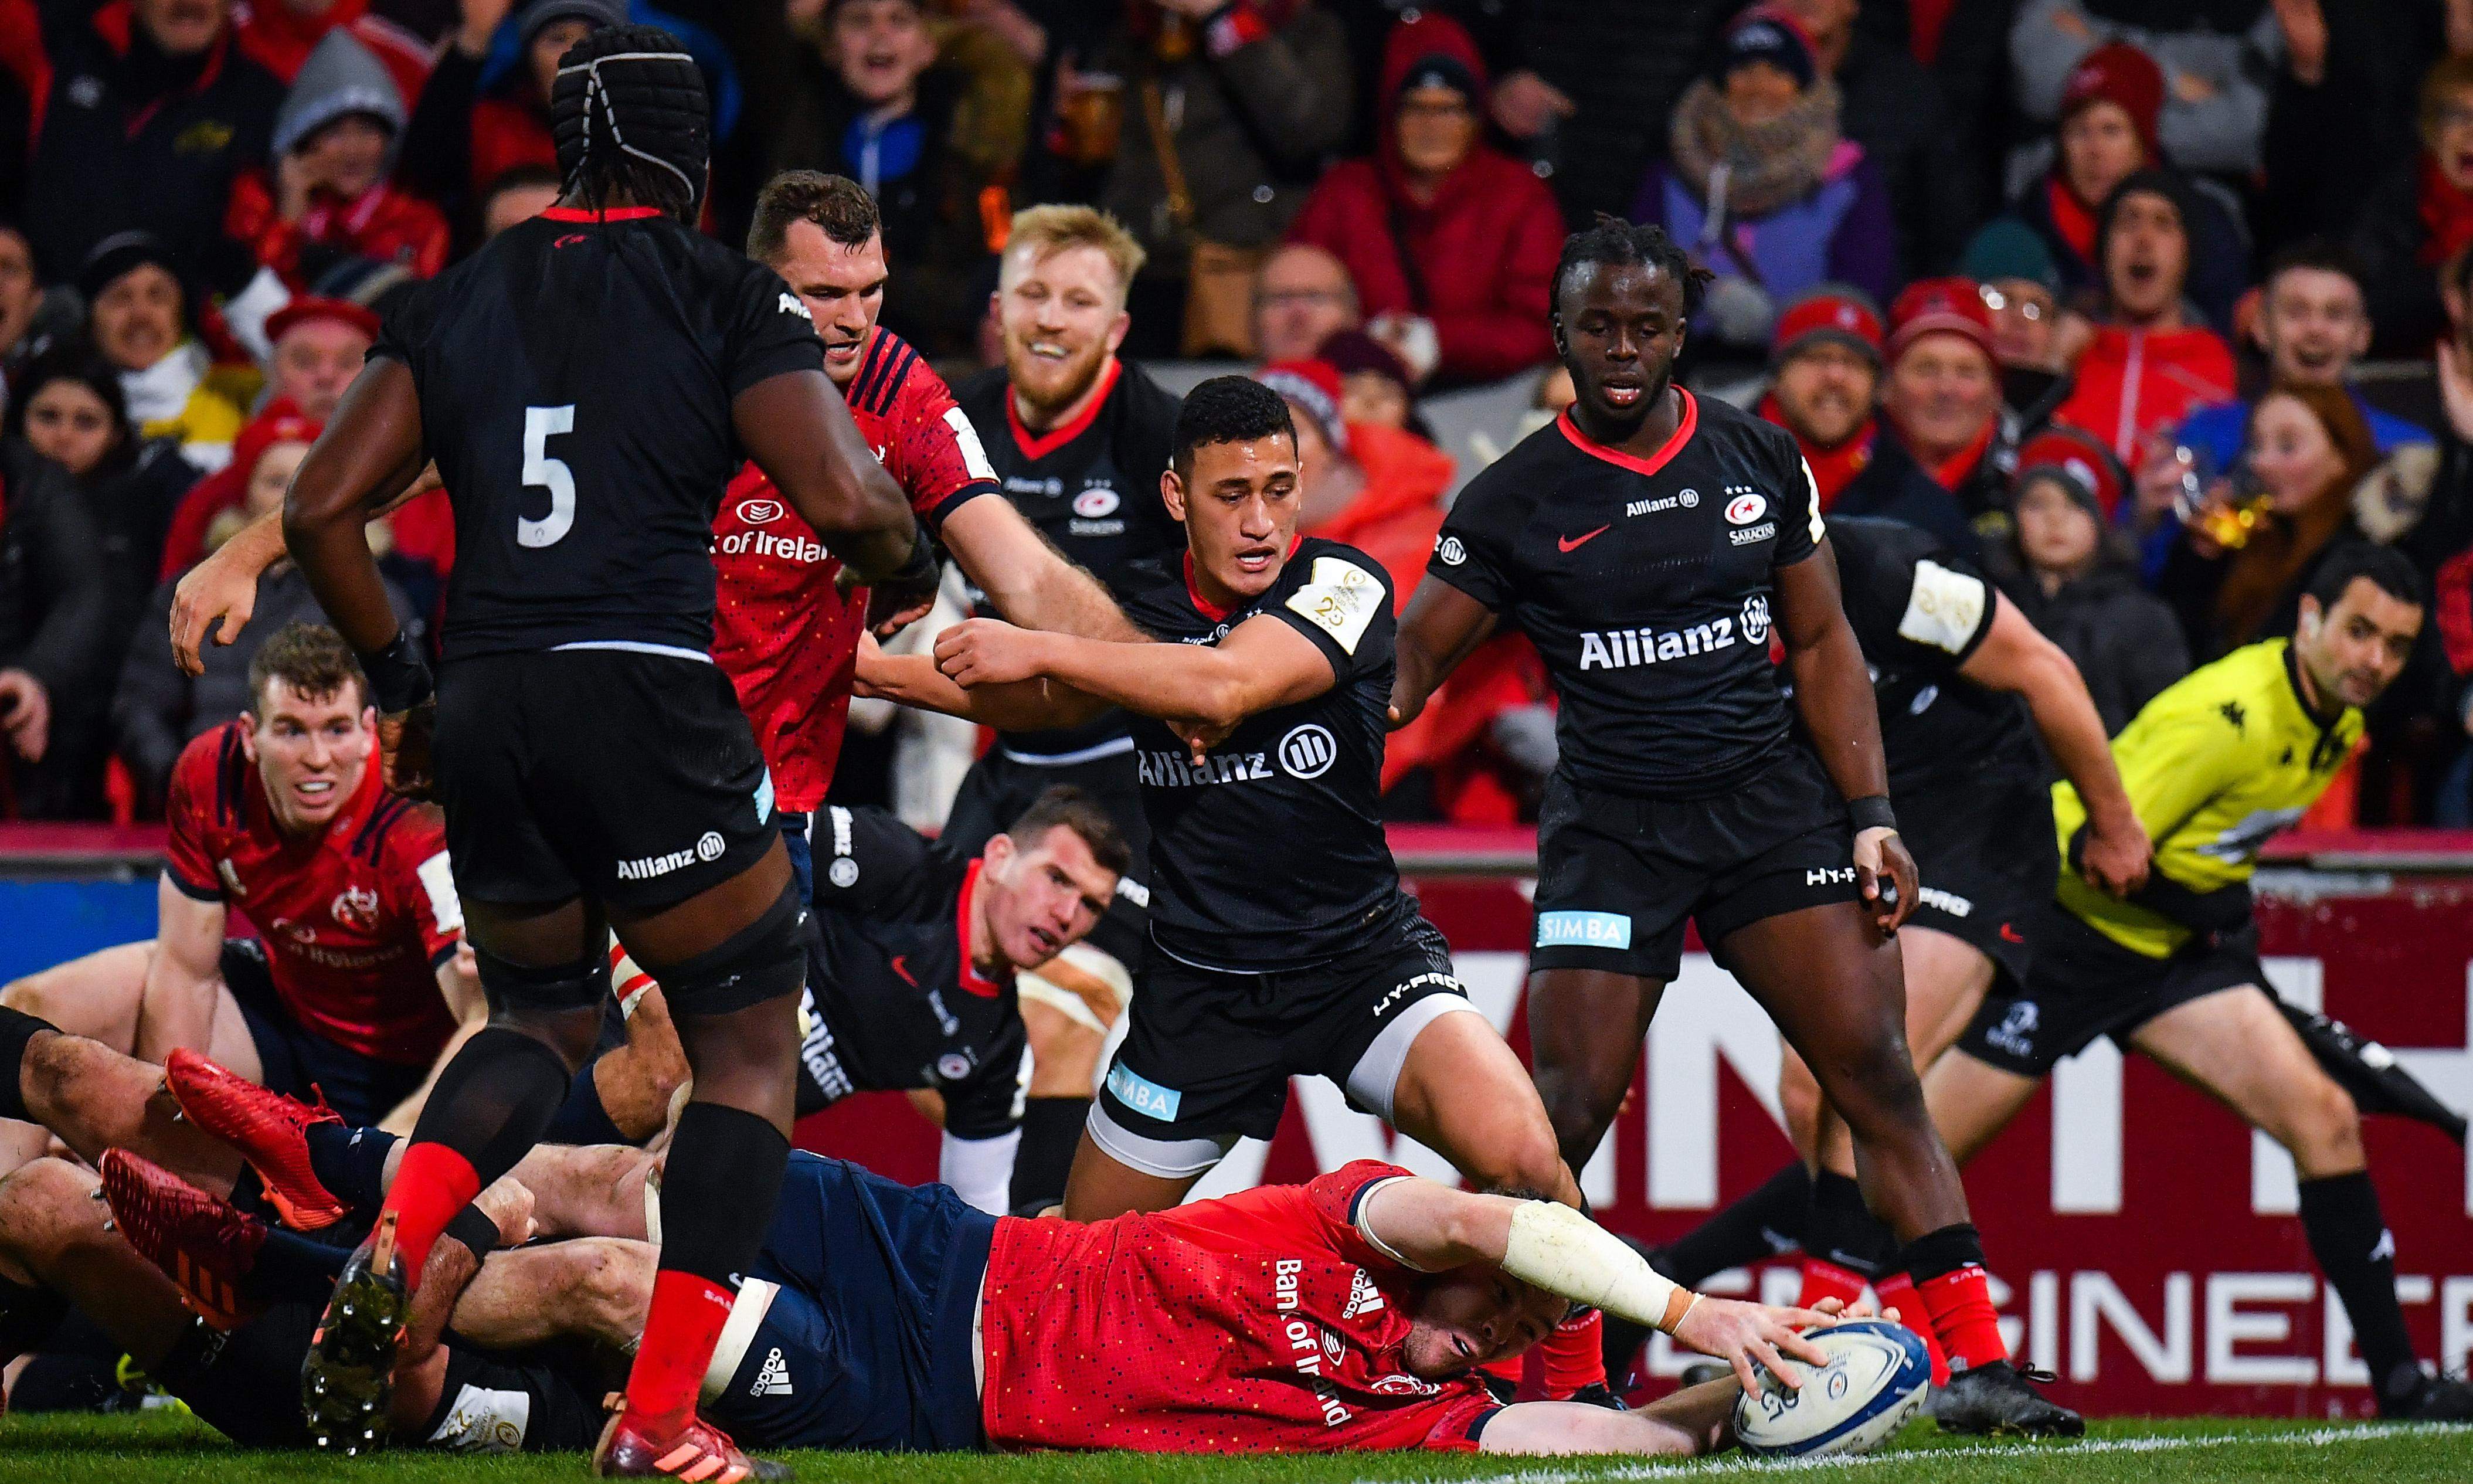 Munster pile more agony on Saracens thanks to Peter O'Mahony's try